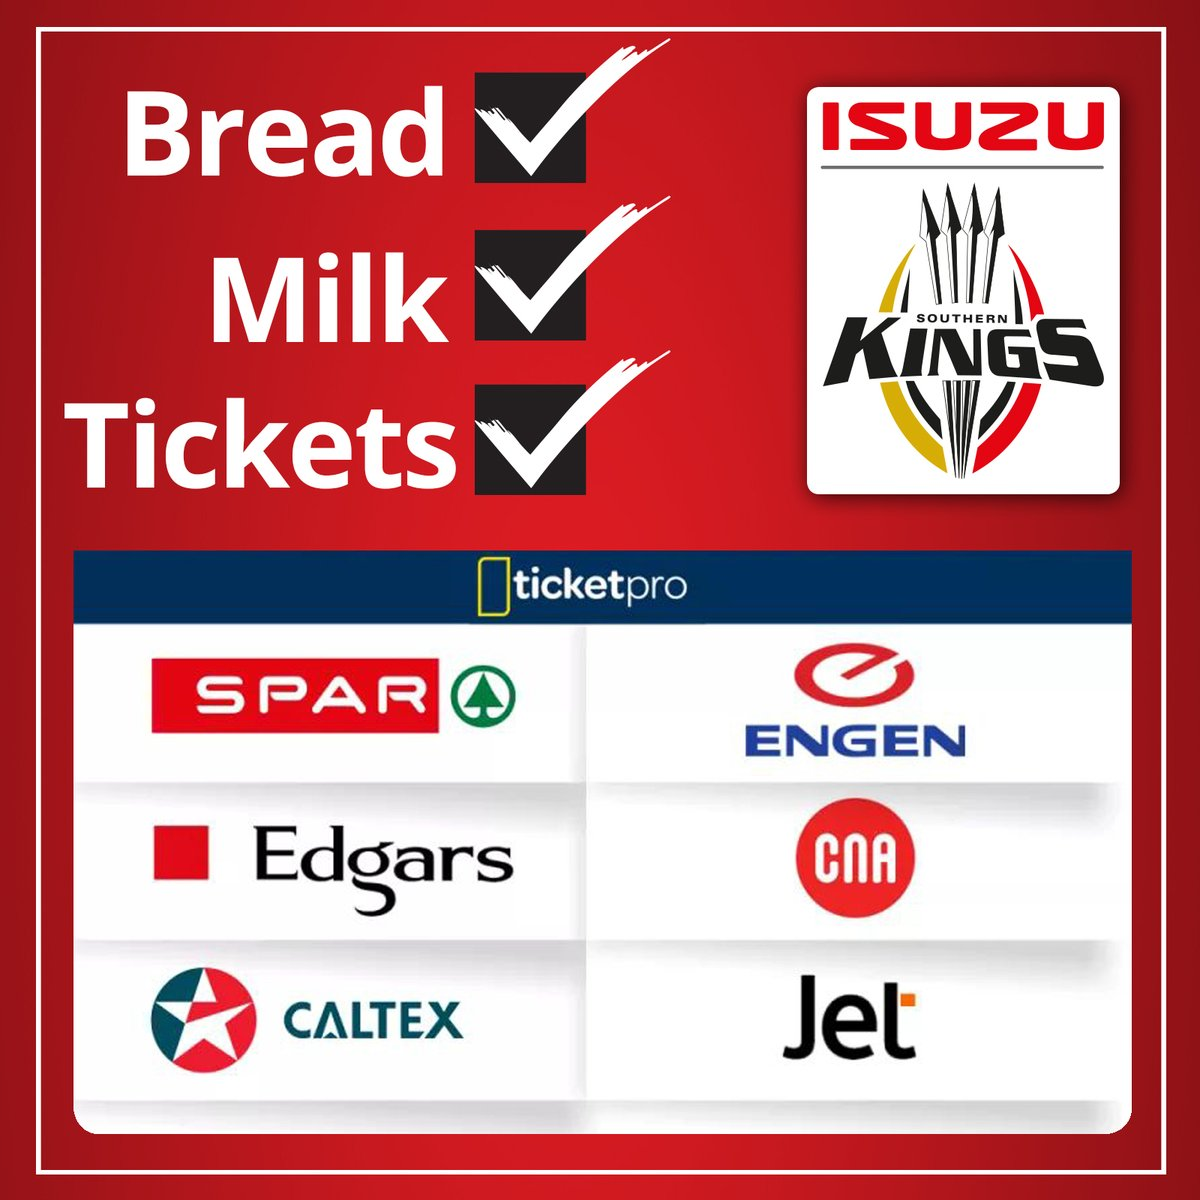 We hear it's pay day for some of you... Why not spoil yourself and your family or friends by joining us for our #SundayFunDay as we take on @connachtrugby this Sunday.  Tickets available at these @TicketProSA outlets, @NMB_Stadium ticket office or online: http://ow.ly/xUoT50yudLw